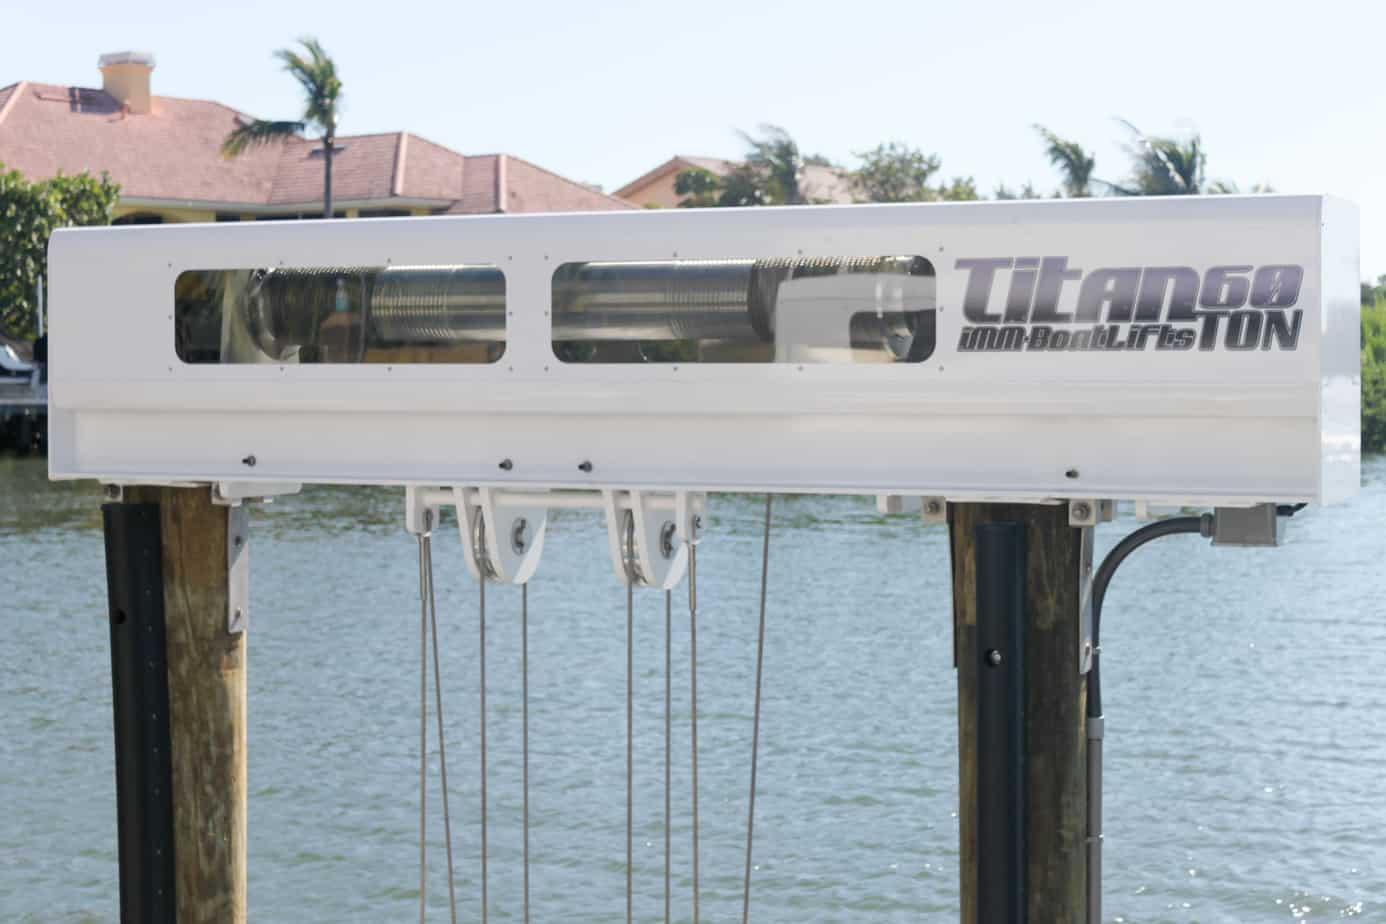 Should You Go For Galvanized Or Stainless Boat Lift Cables - image patented-technology-Titan-Beam on http://iqboatlifts.com